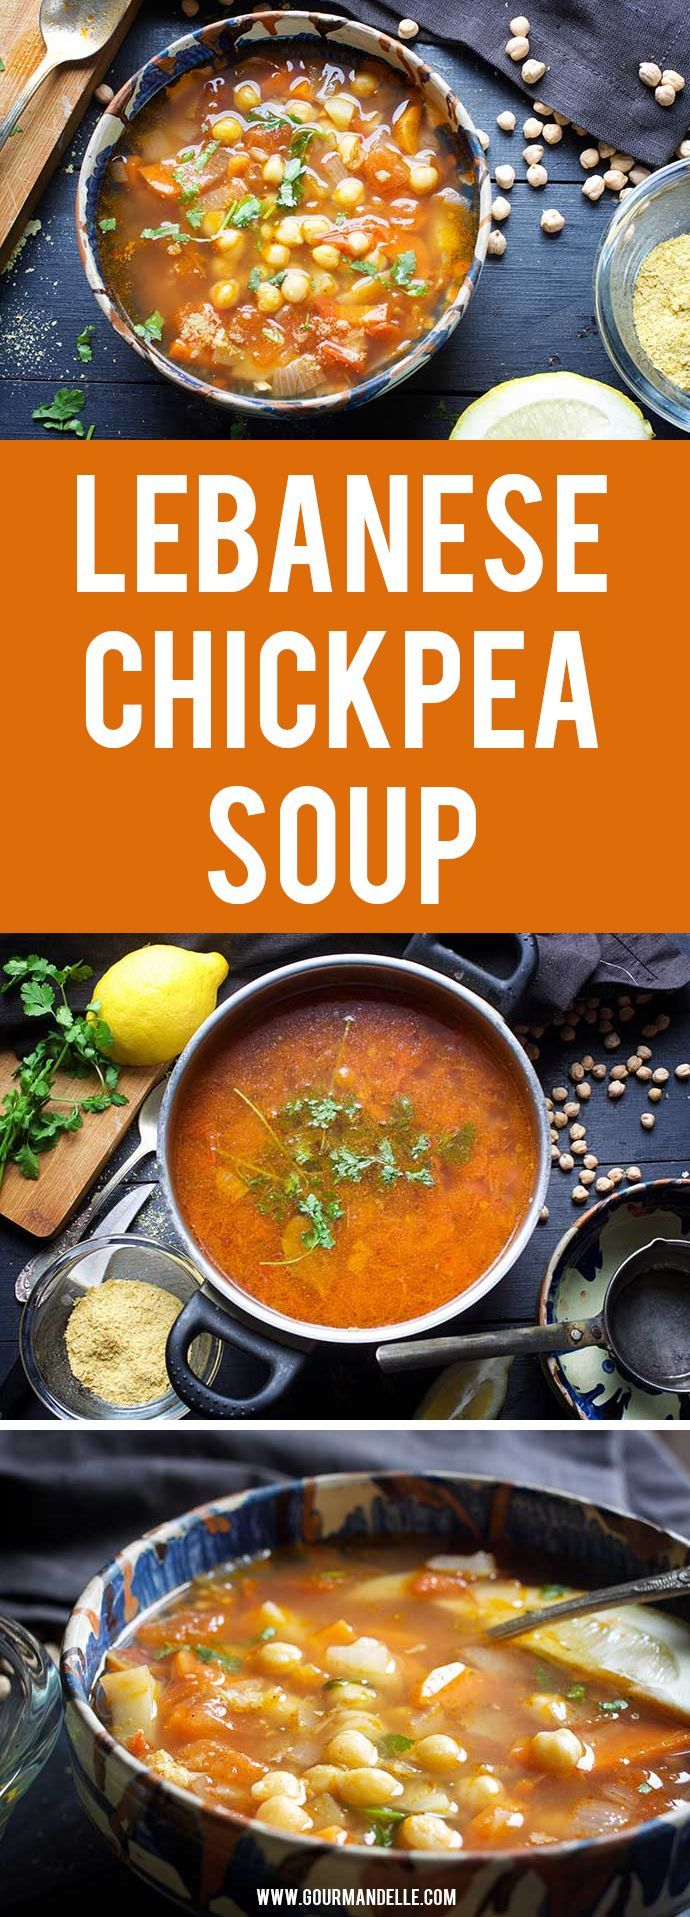 This delicious Lebanese chickpea soup is the perfect Middle Eastern-inspired comfort soup! It's bursting with amazing flavors and very filling due to chickpeas, potatoes, and carrots.  #lebanese #chickpea #soup #veganrecipes